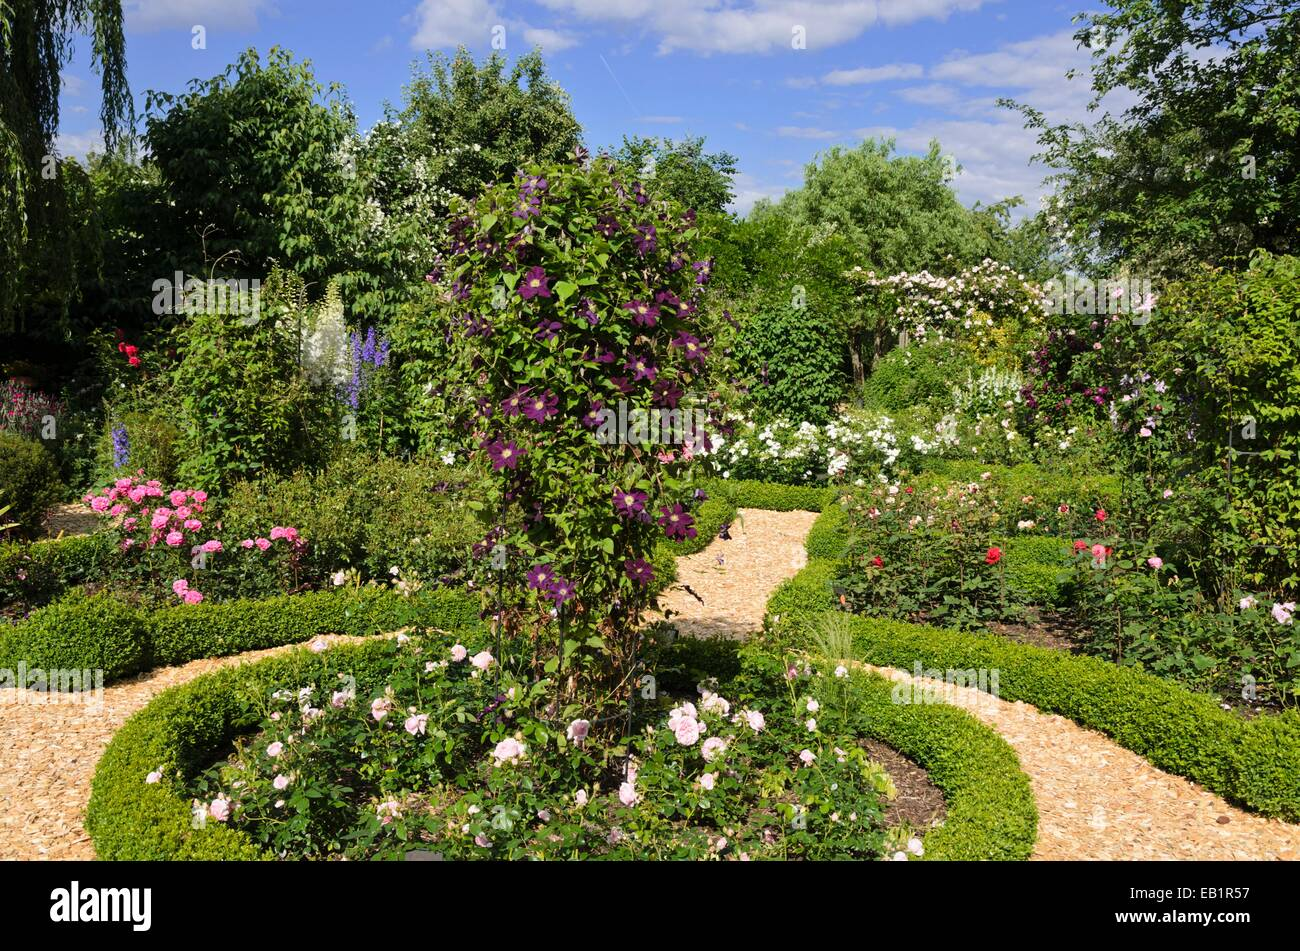 Clematis (Clematis) And Roses (Rosa) In A Rose Garden. Design: